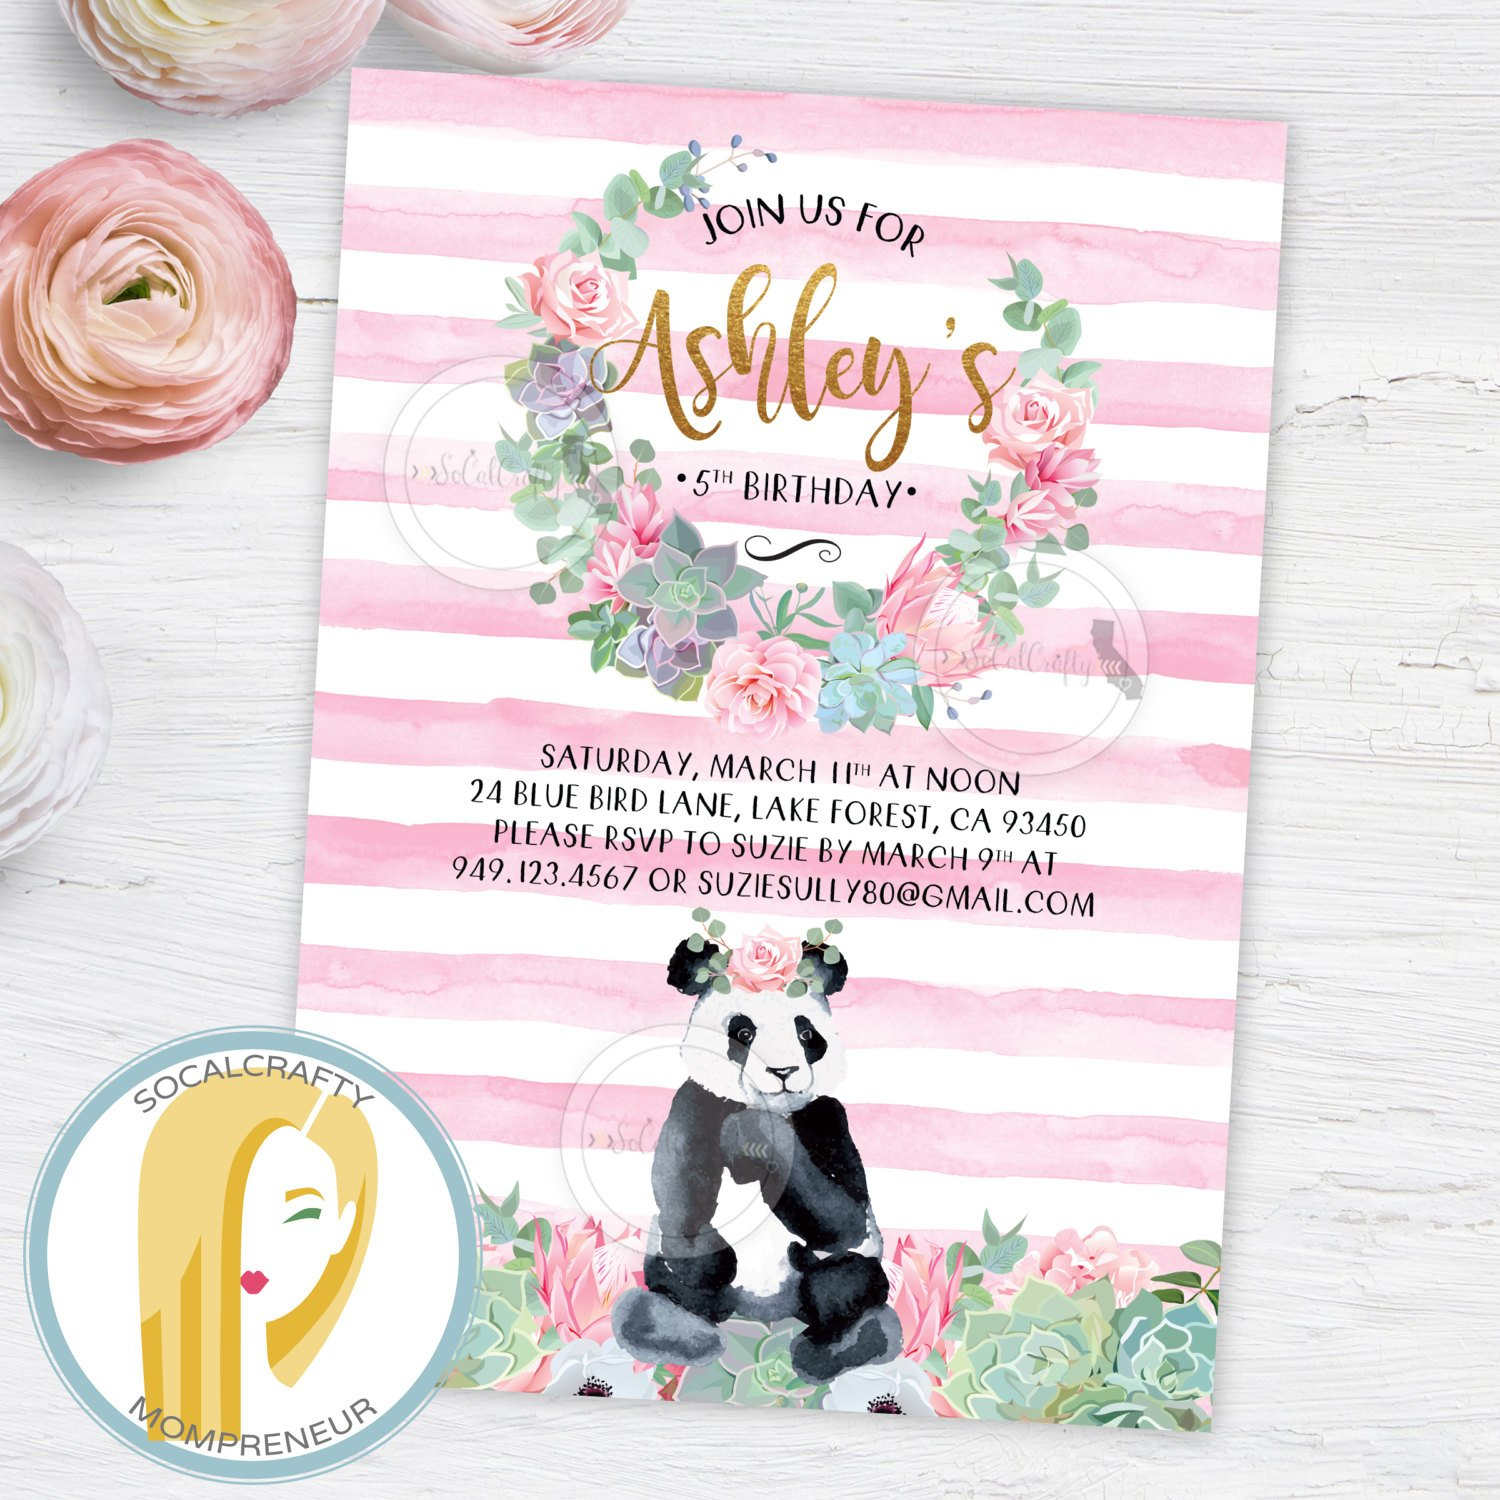 Panda Birthday Party Invitation Panda Bear Invitation Girl | Etsy - Panda Bear Invitations Free Printable